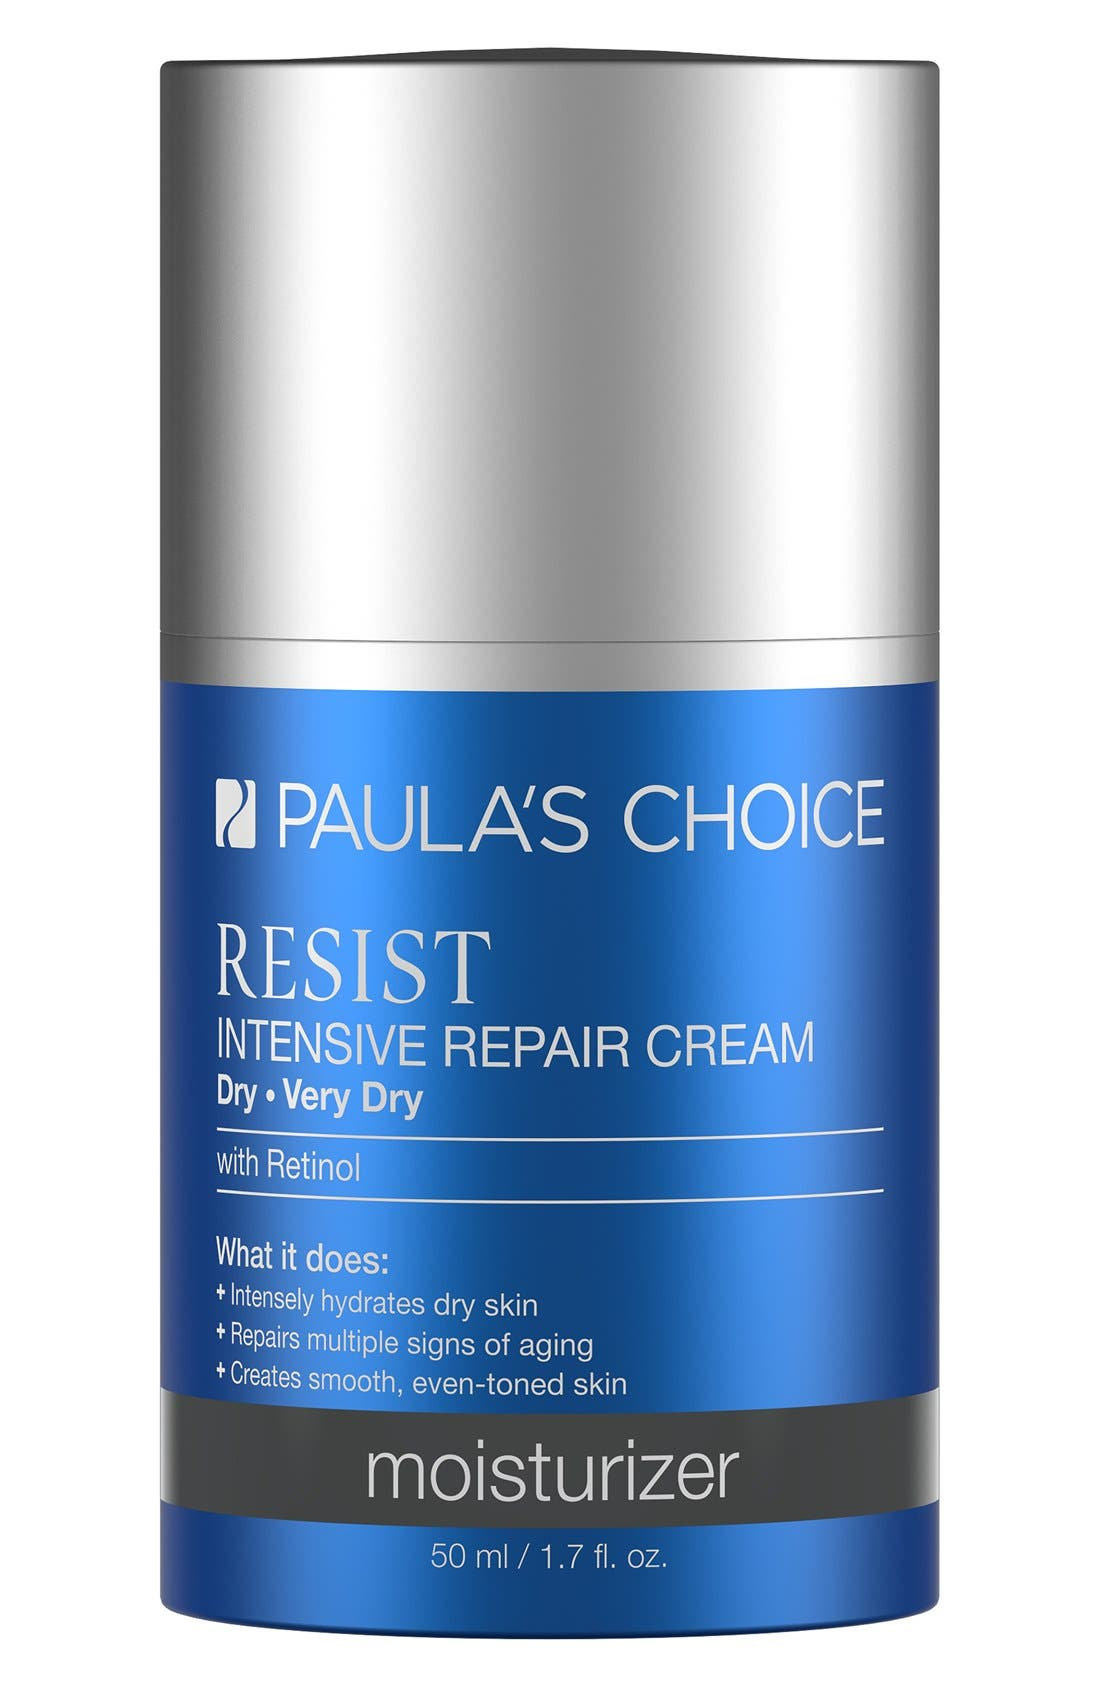 Paula's Choice Resist Intensive Repair Cream with Retinol